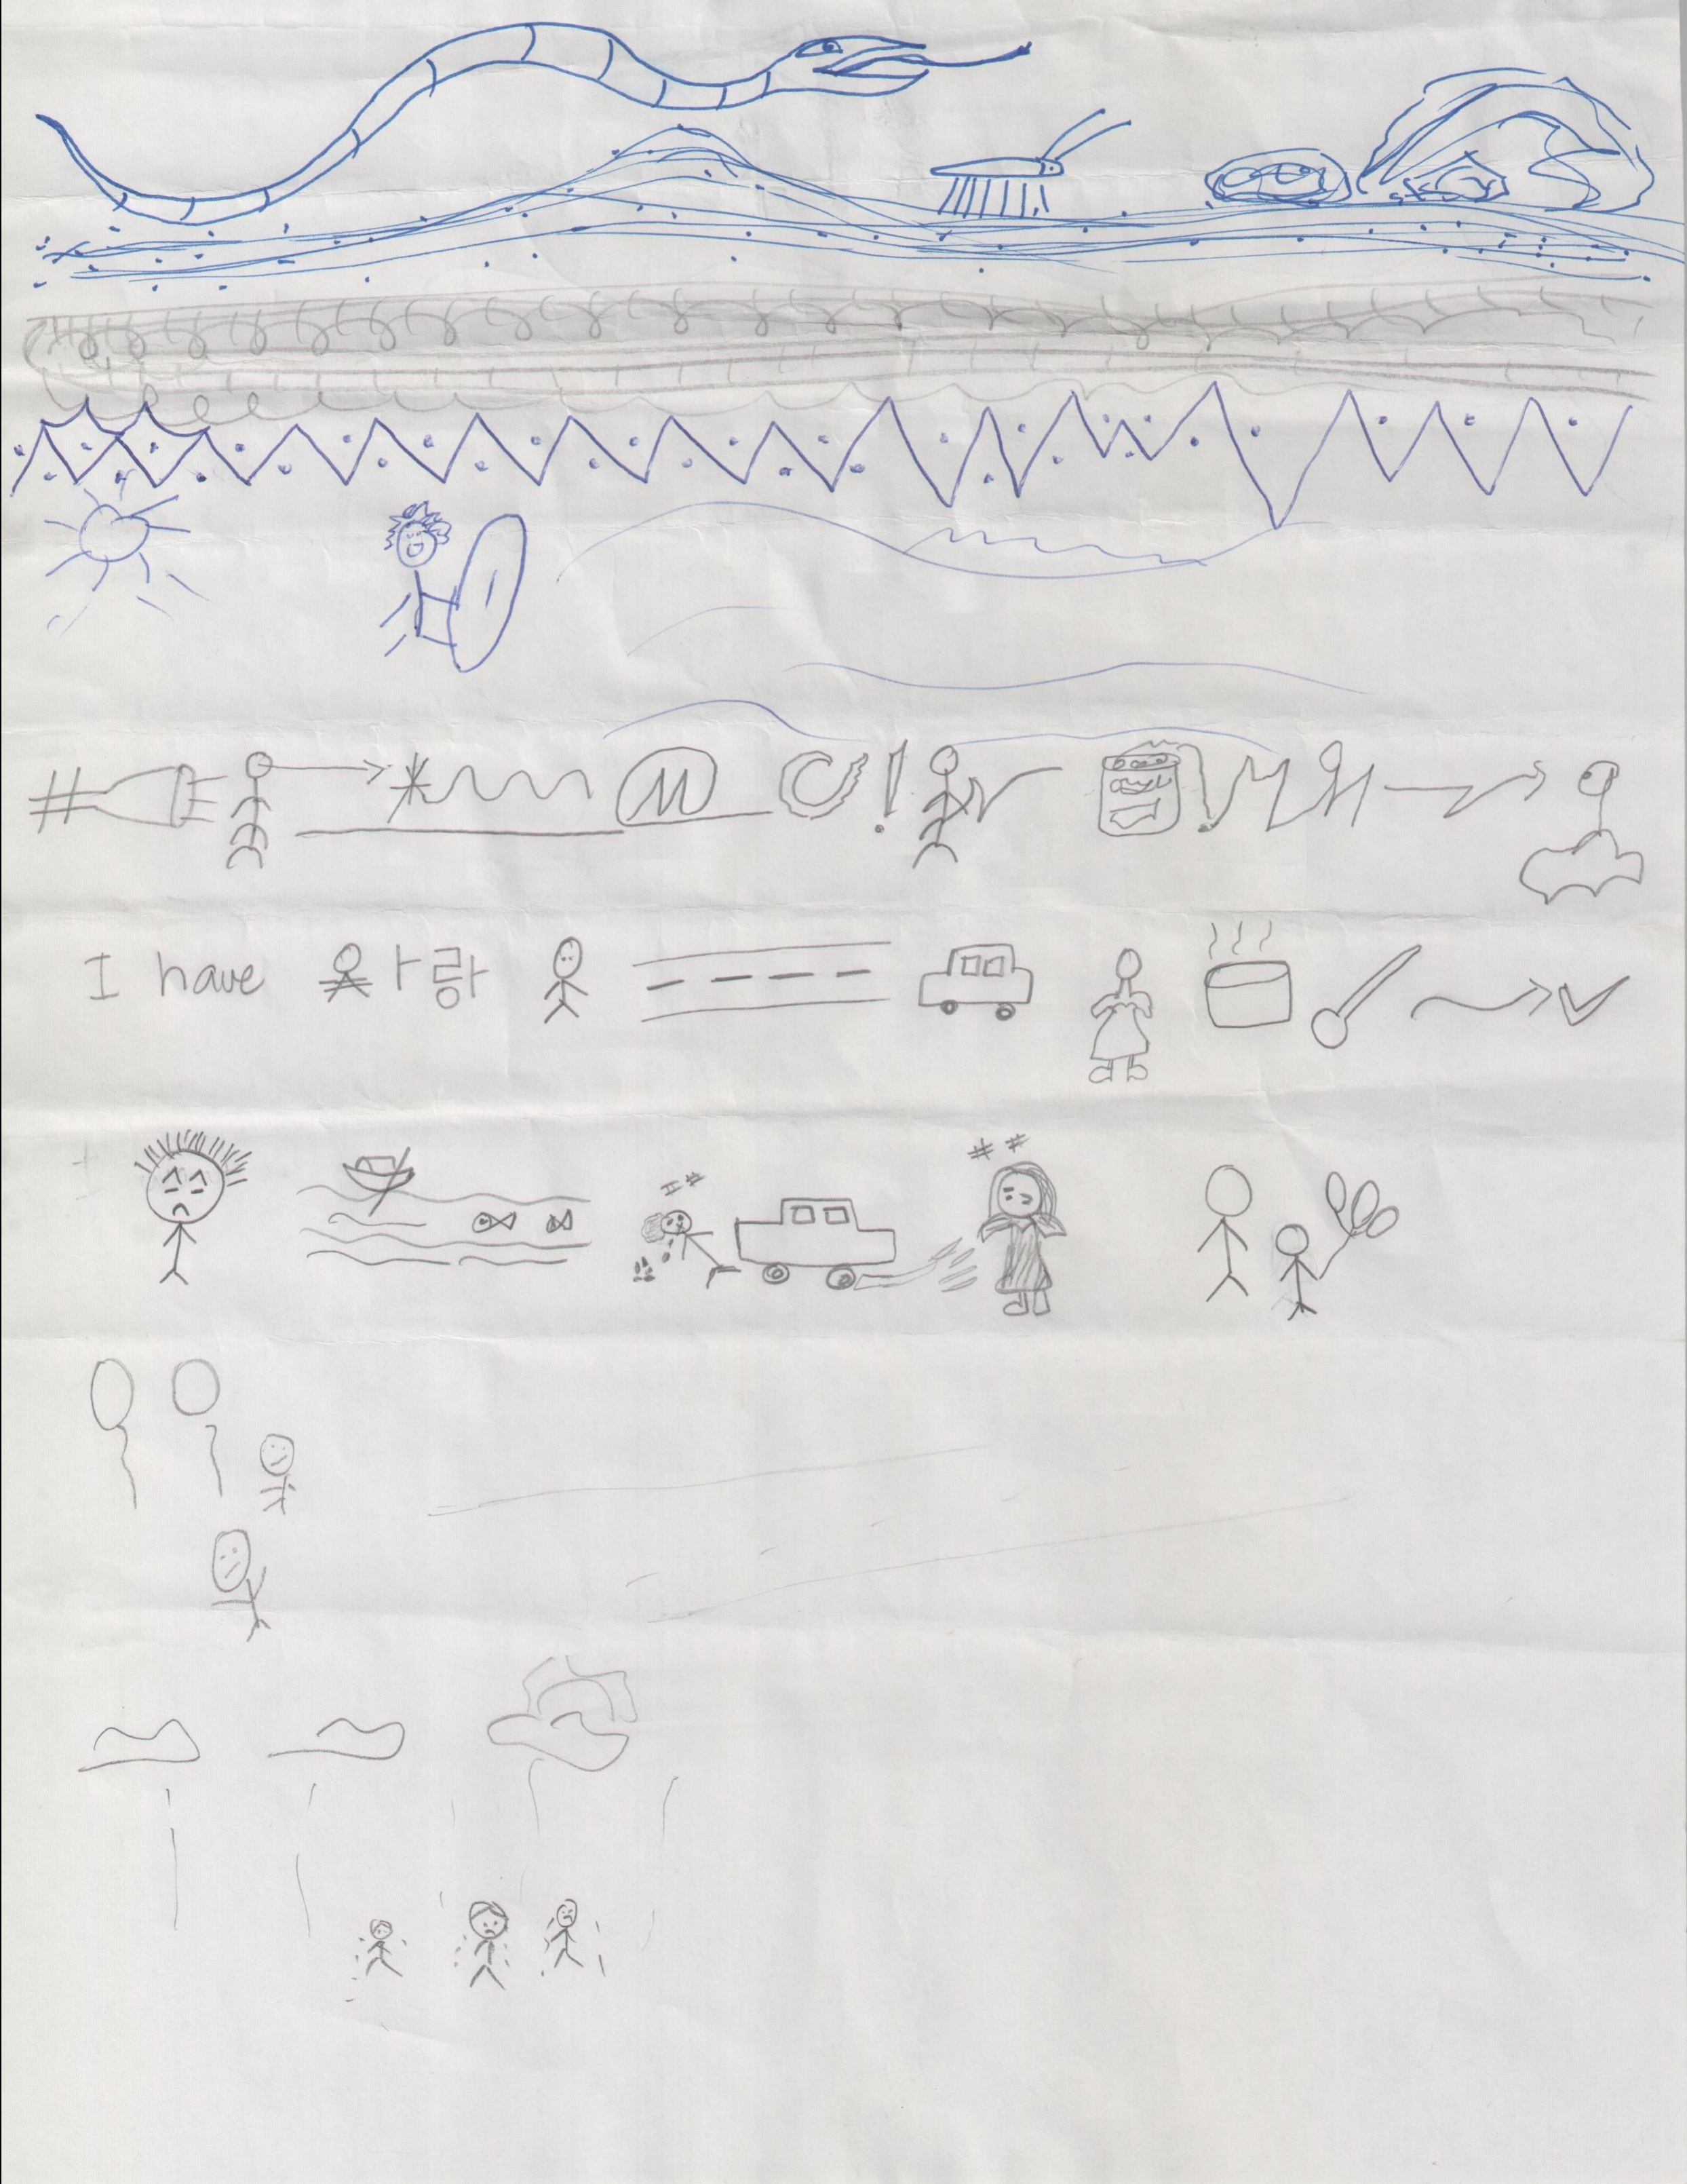 EXQUISITE CORPSE DRAWING I